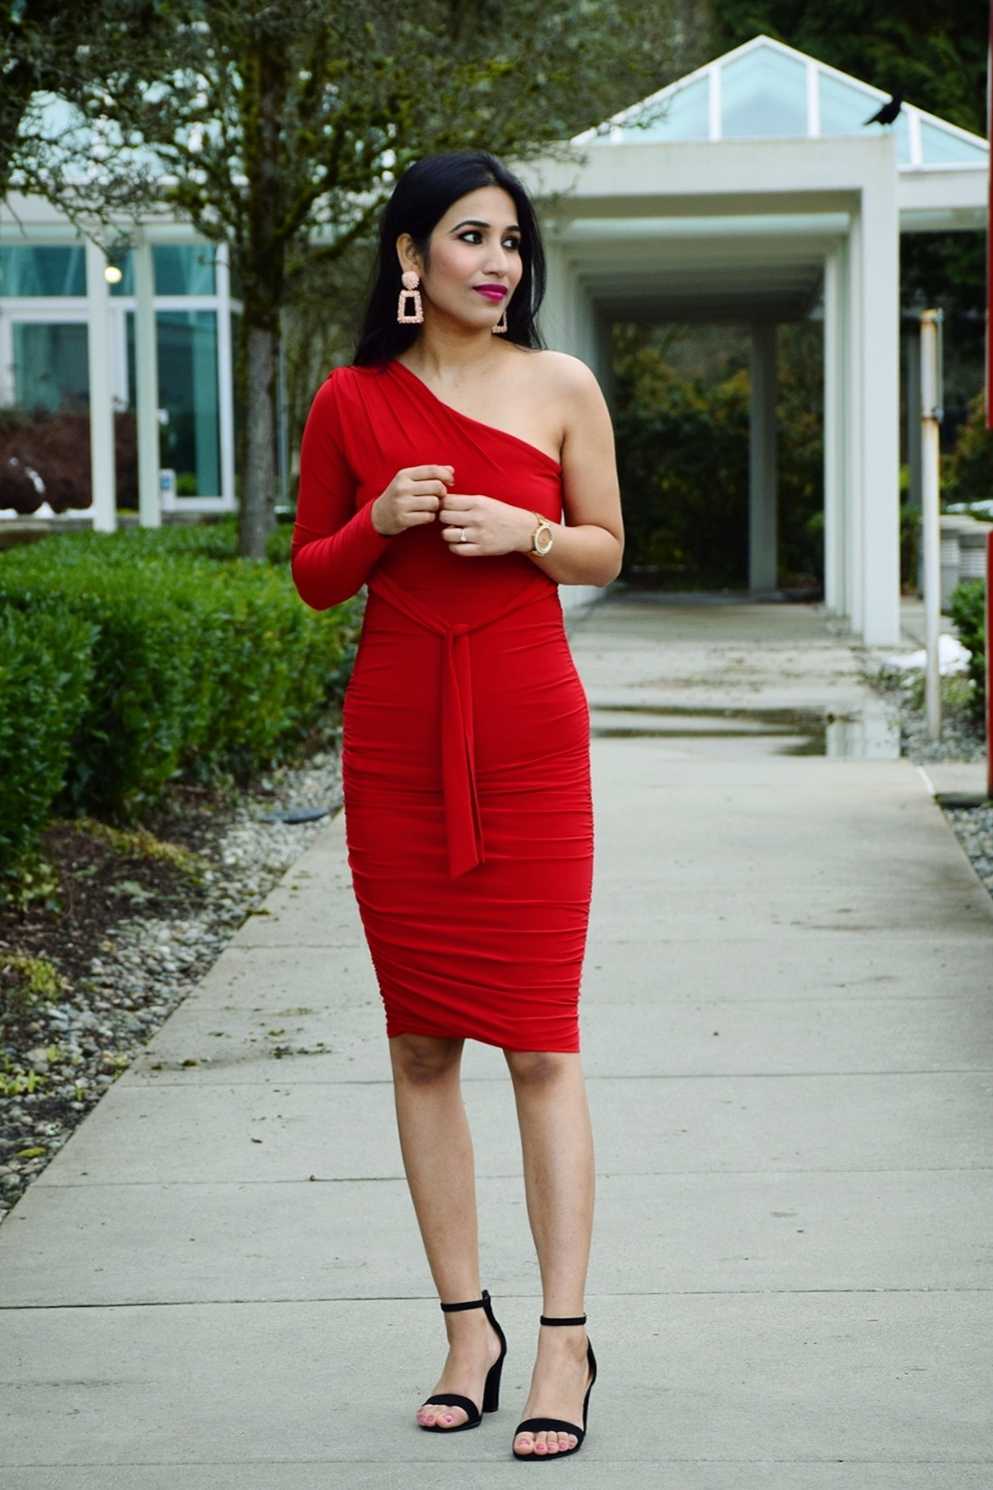 https://femmeluxefinery.co.uk/collections/dresses/products/red-one-shoulder-ruched-slinky-midi-dress-savannah